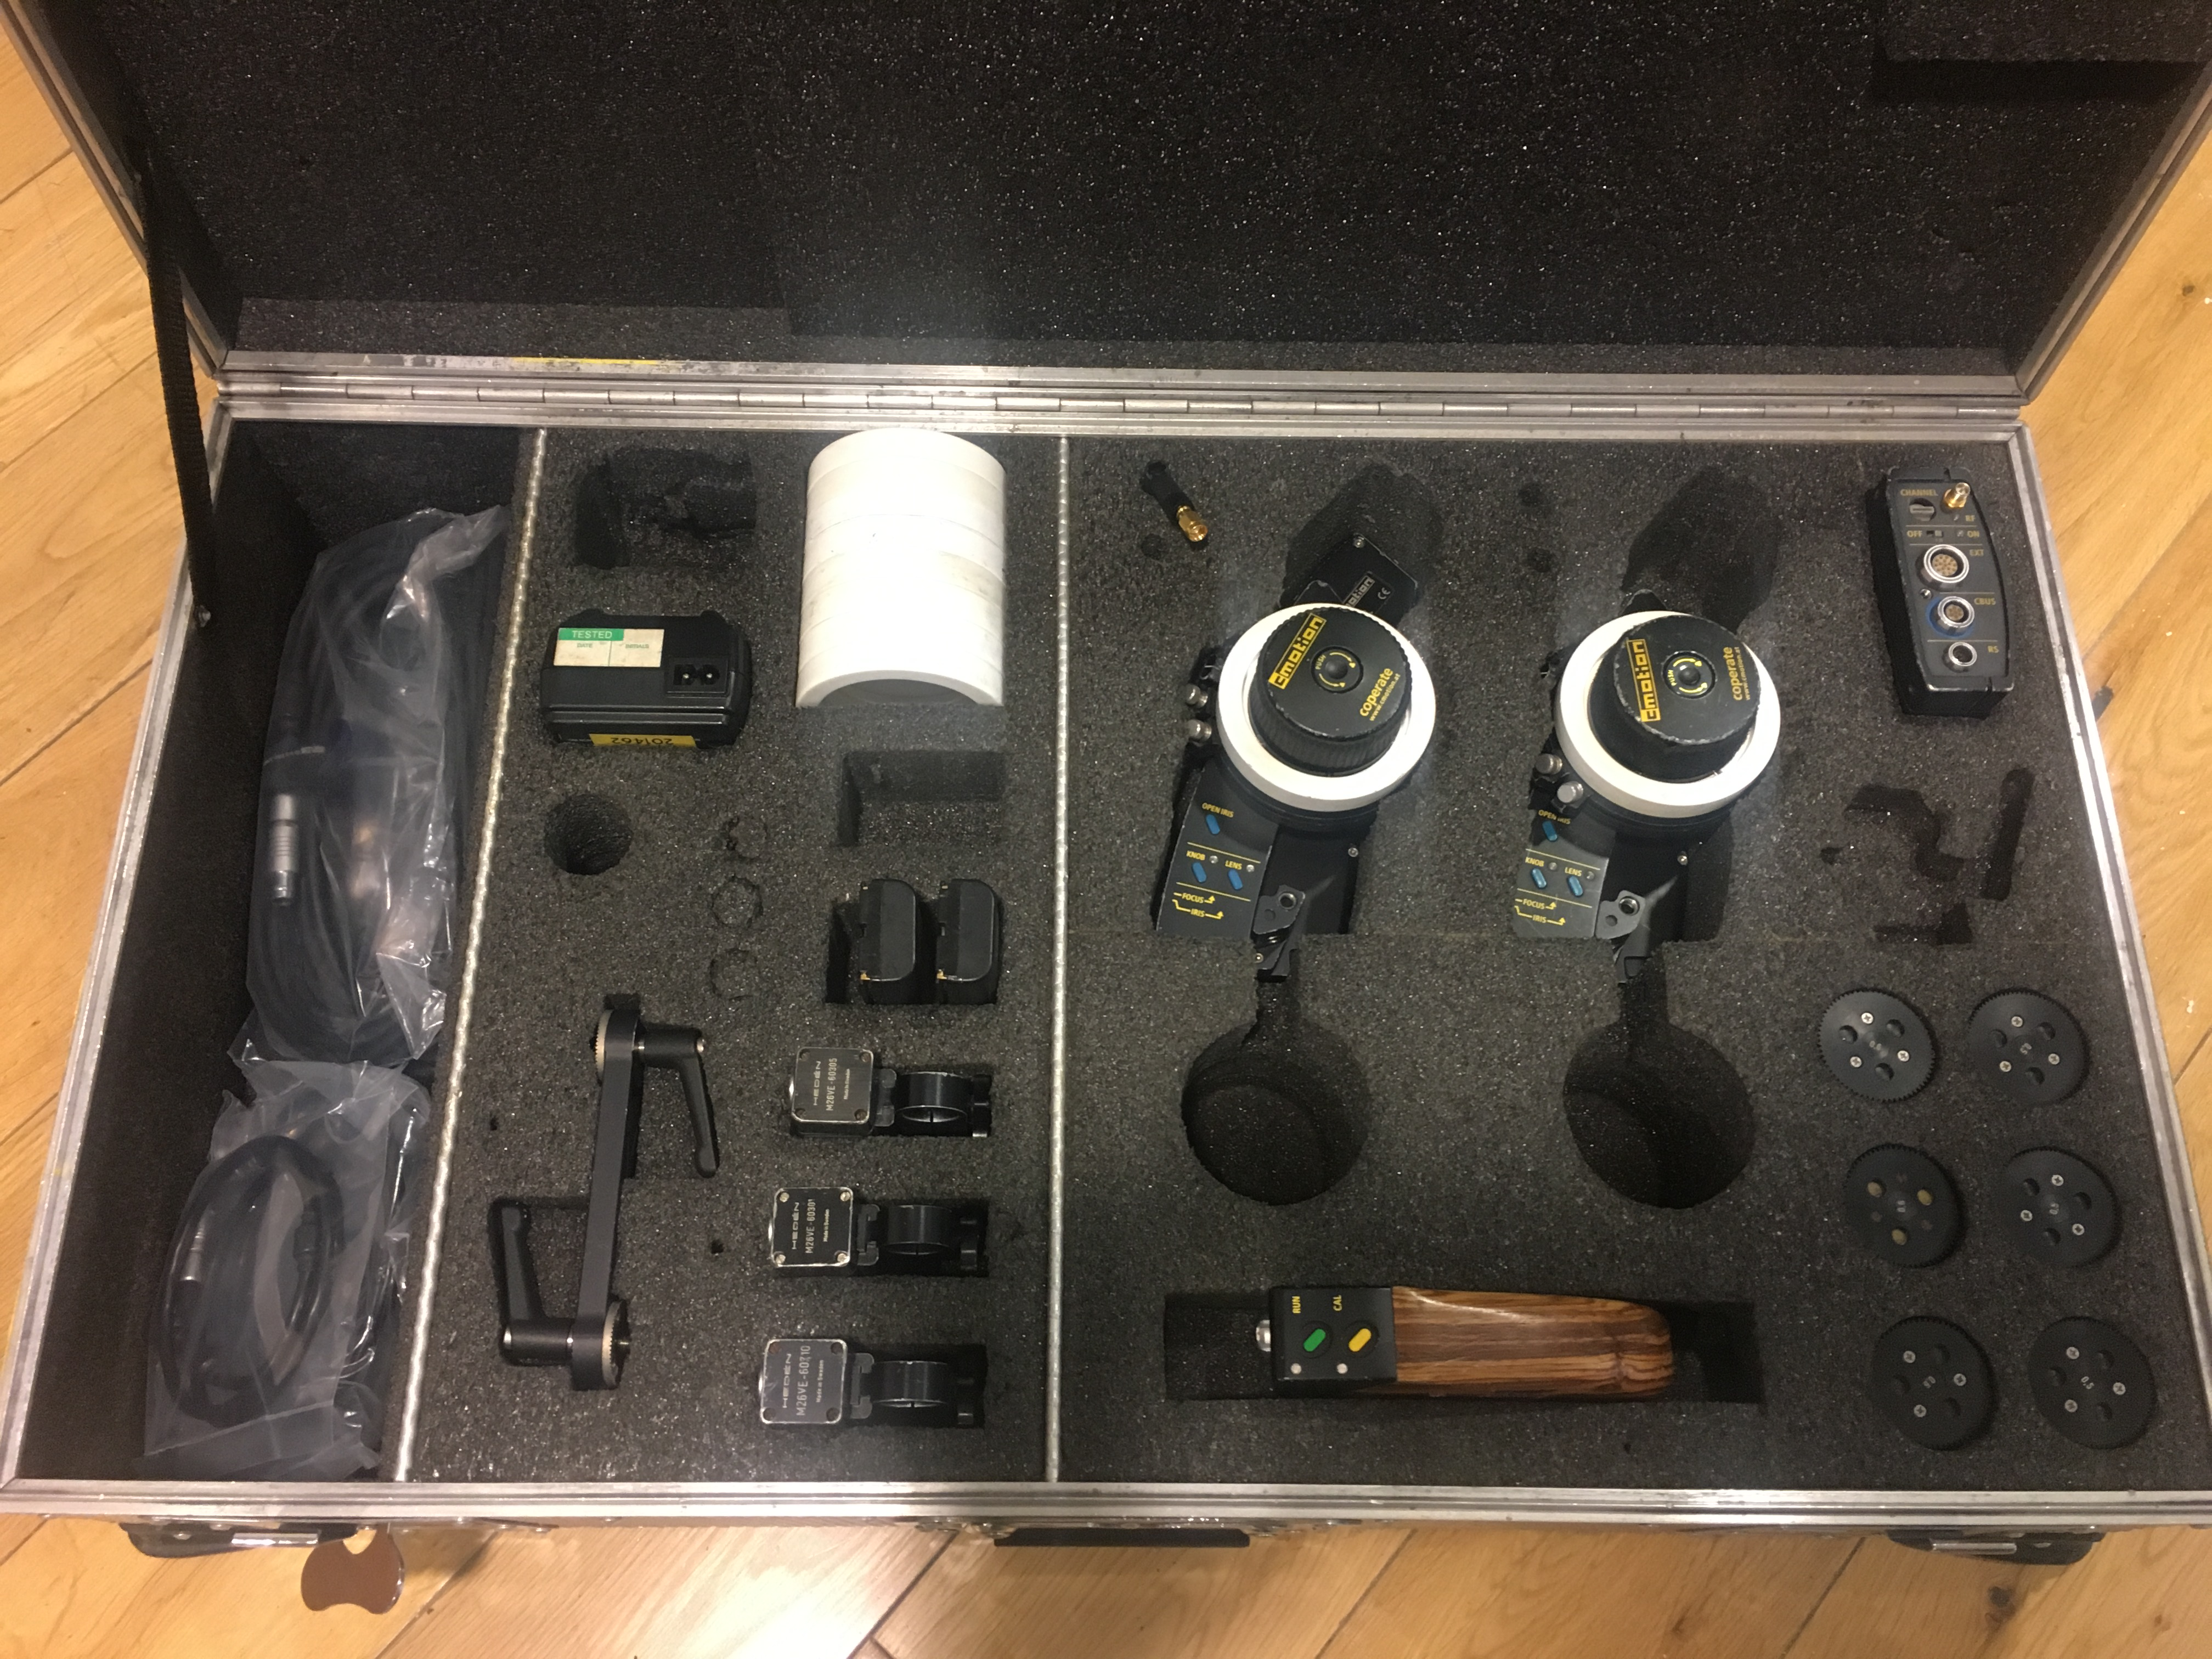 Cmotion Coperate Lens Control System Wireless lens control system Cmotion 3 kits available - Image #1